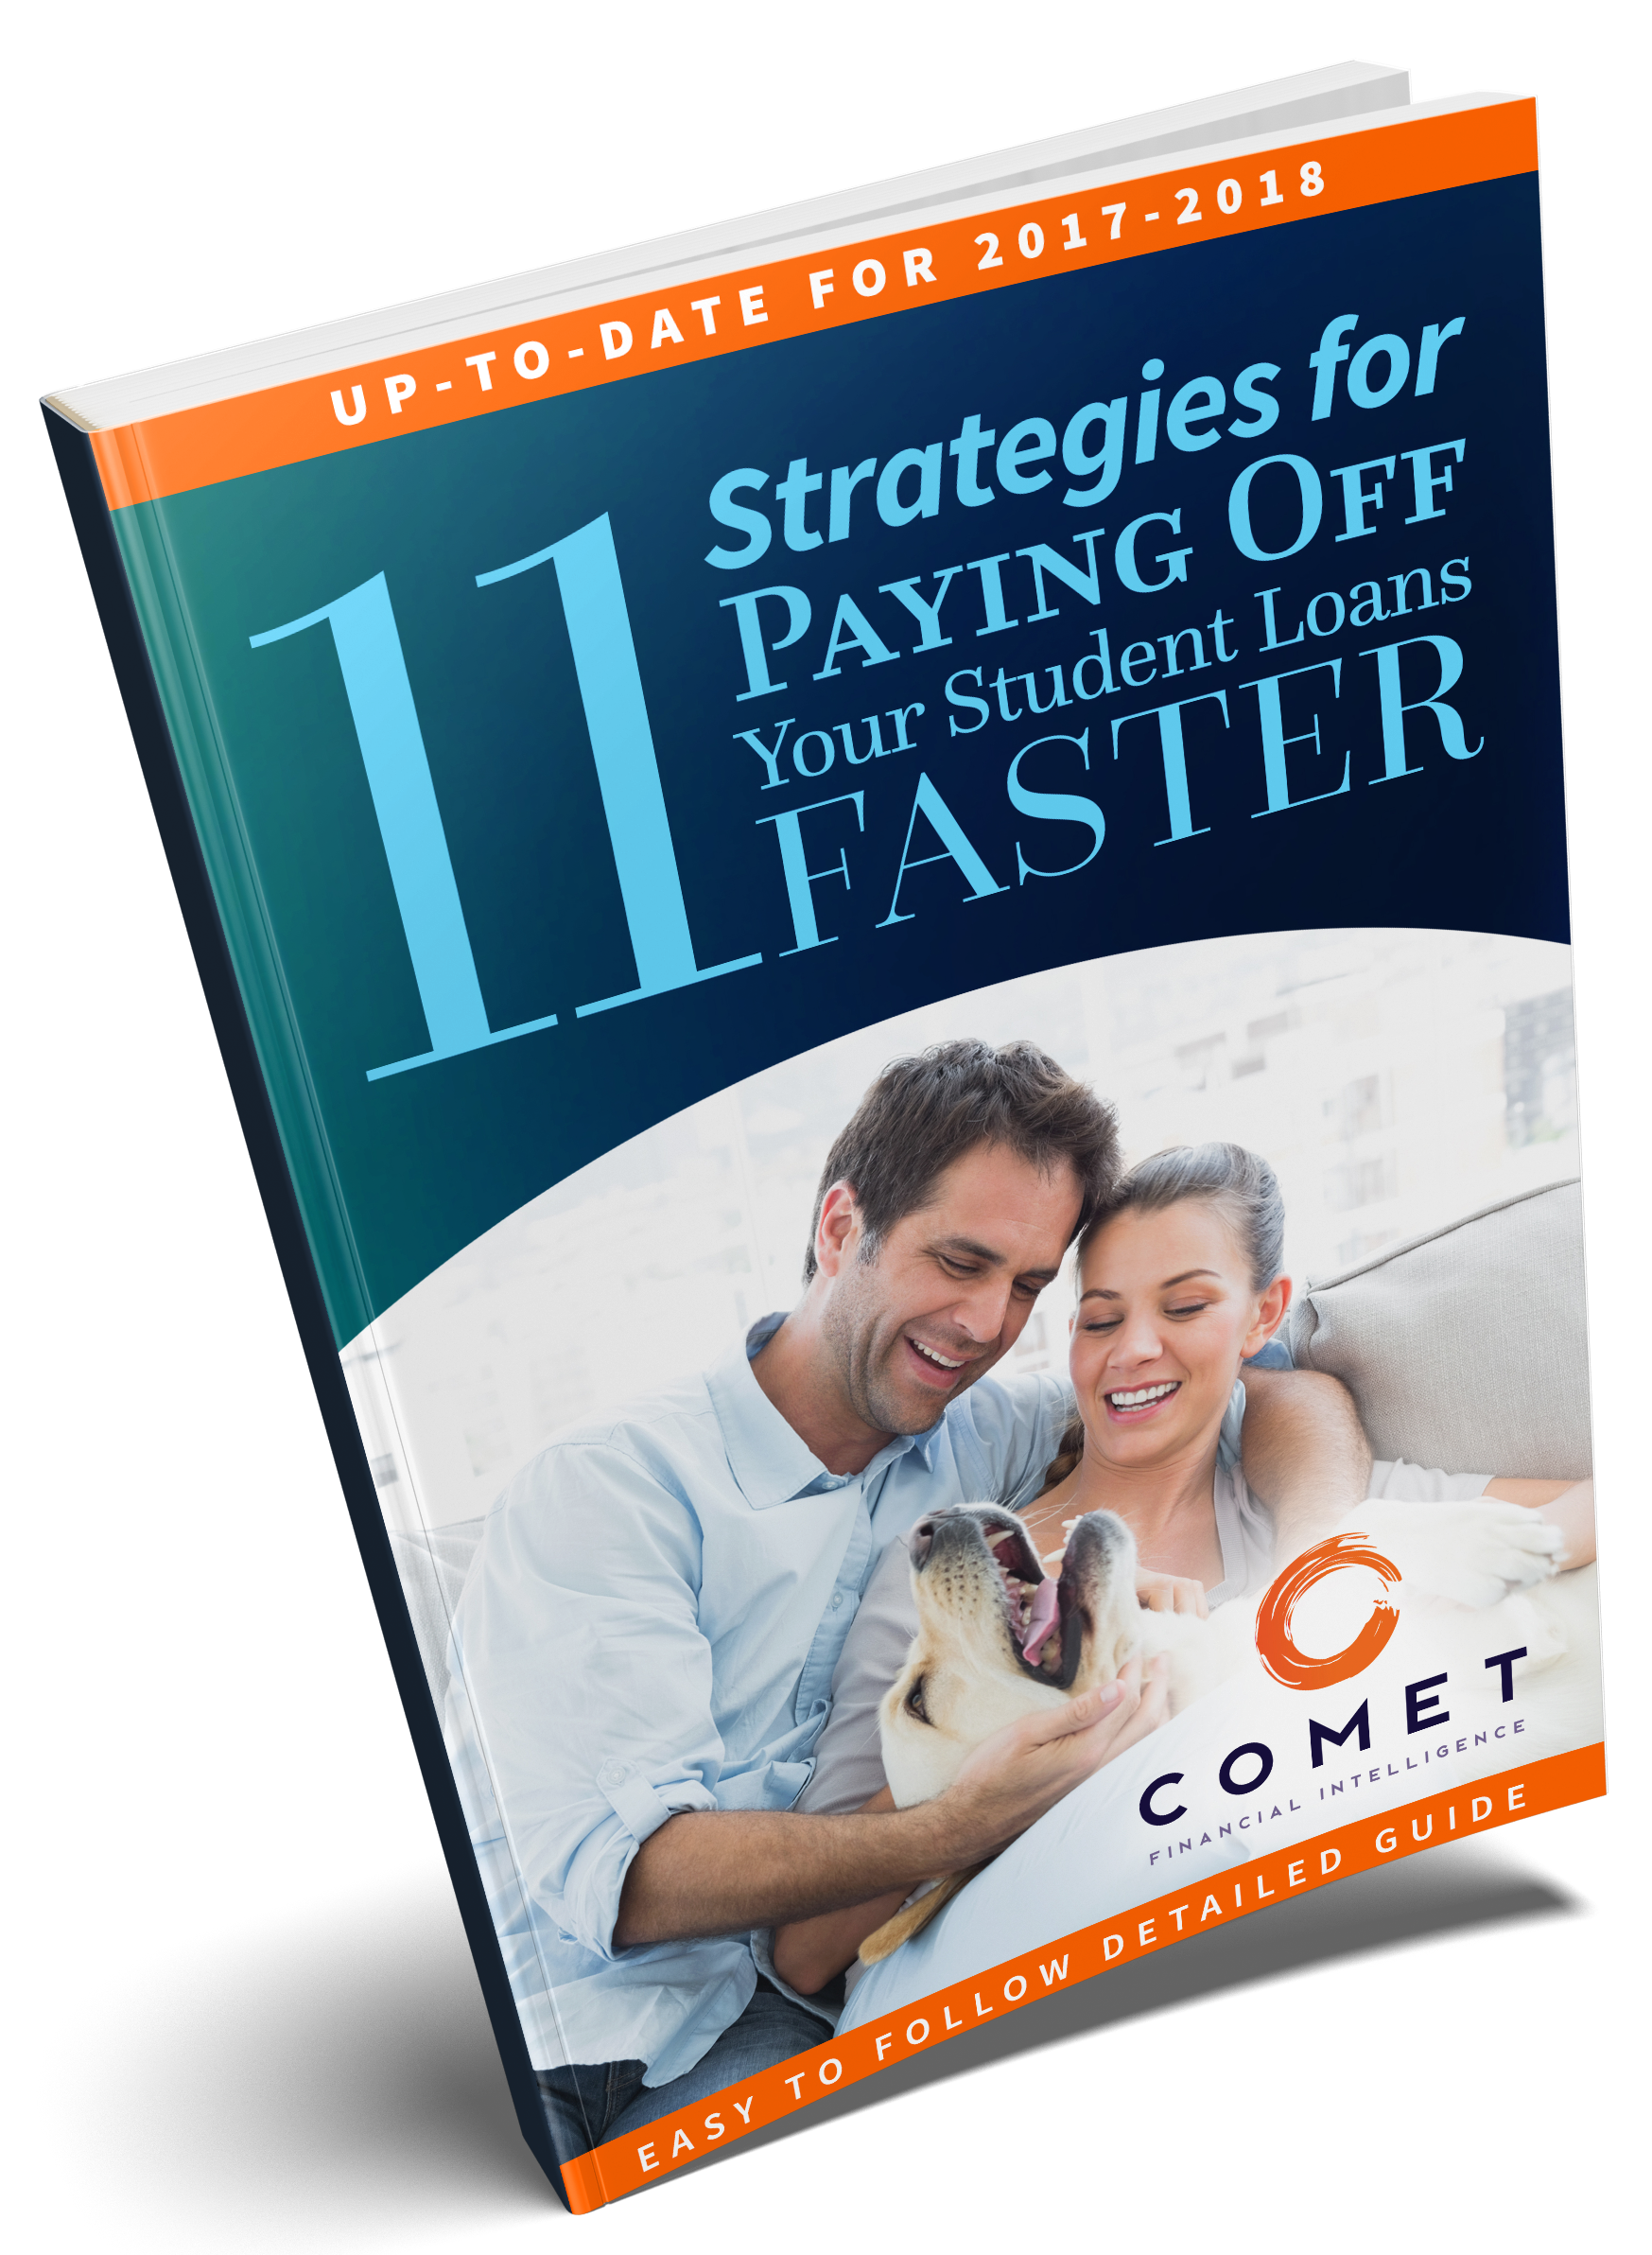 Comet - 11 Strategies for Paying Off Your Student Loans Faster